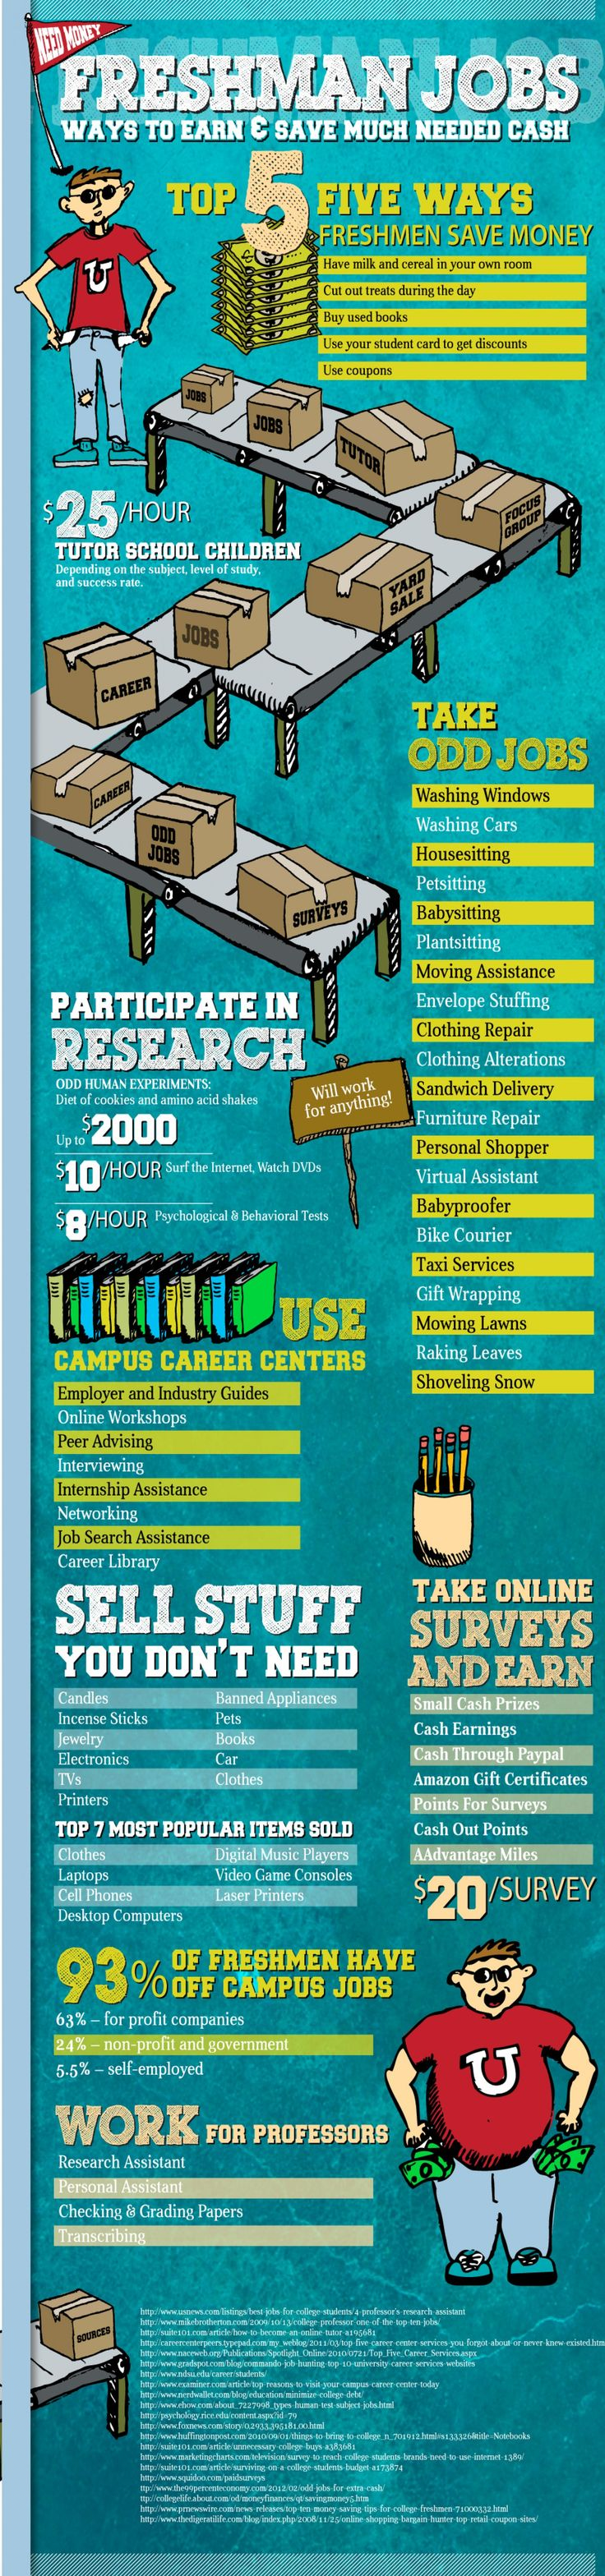 Freshman Jobs: Tips to Earn and Save Money at College. #college #money